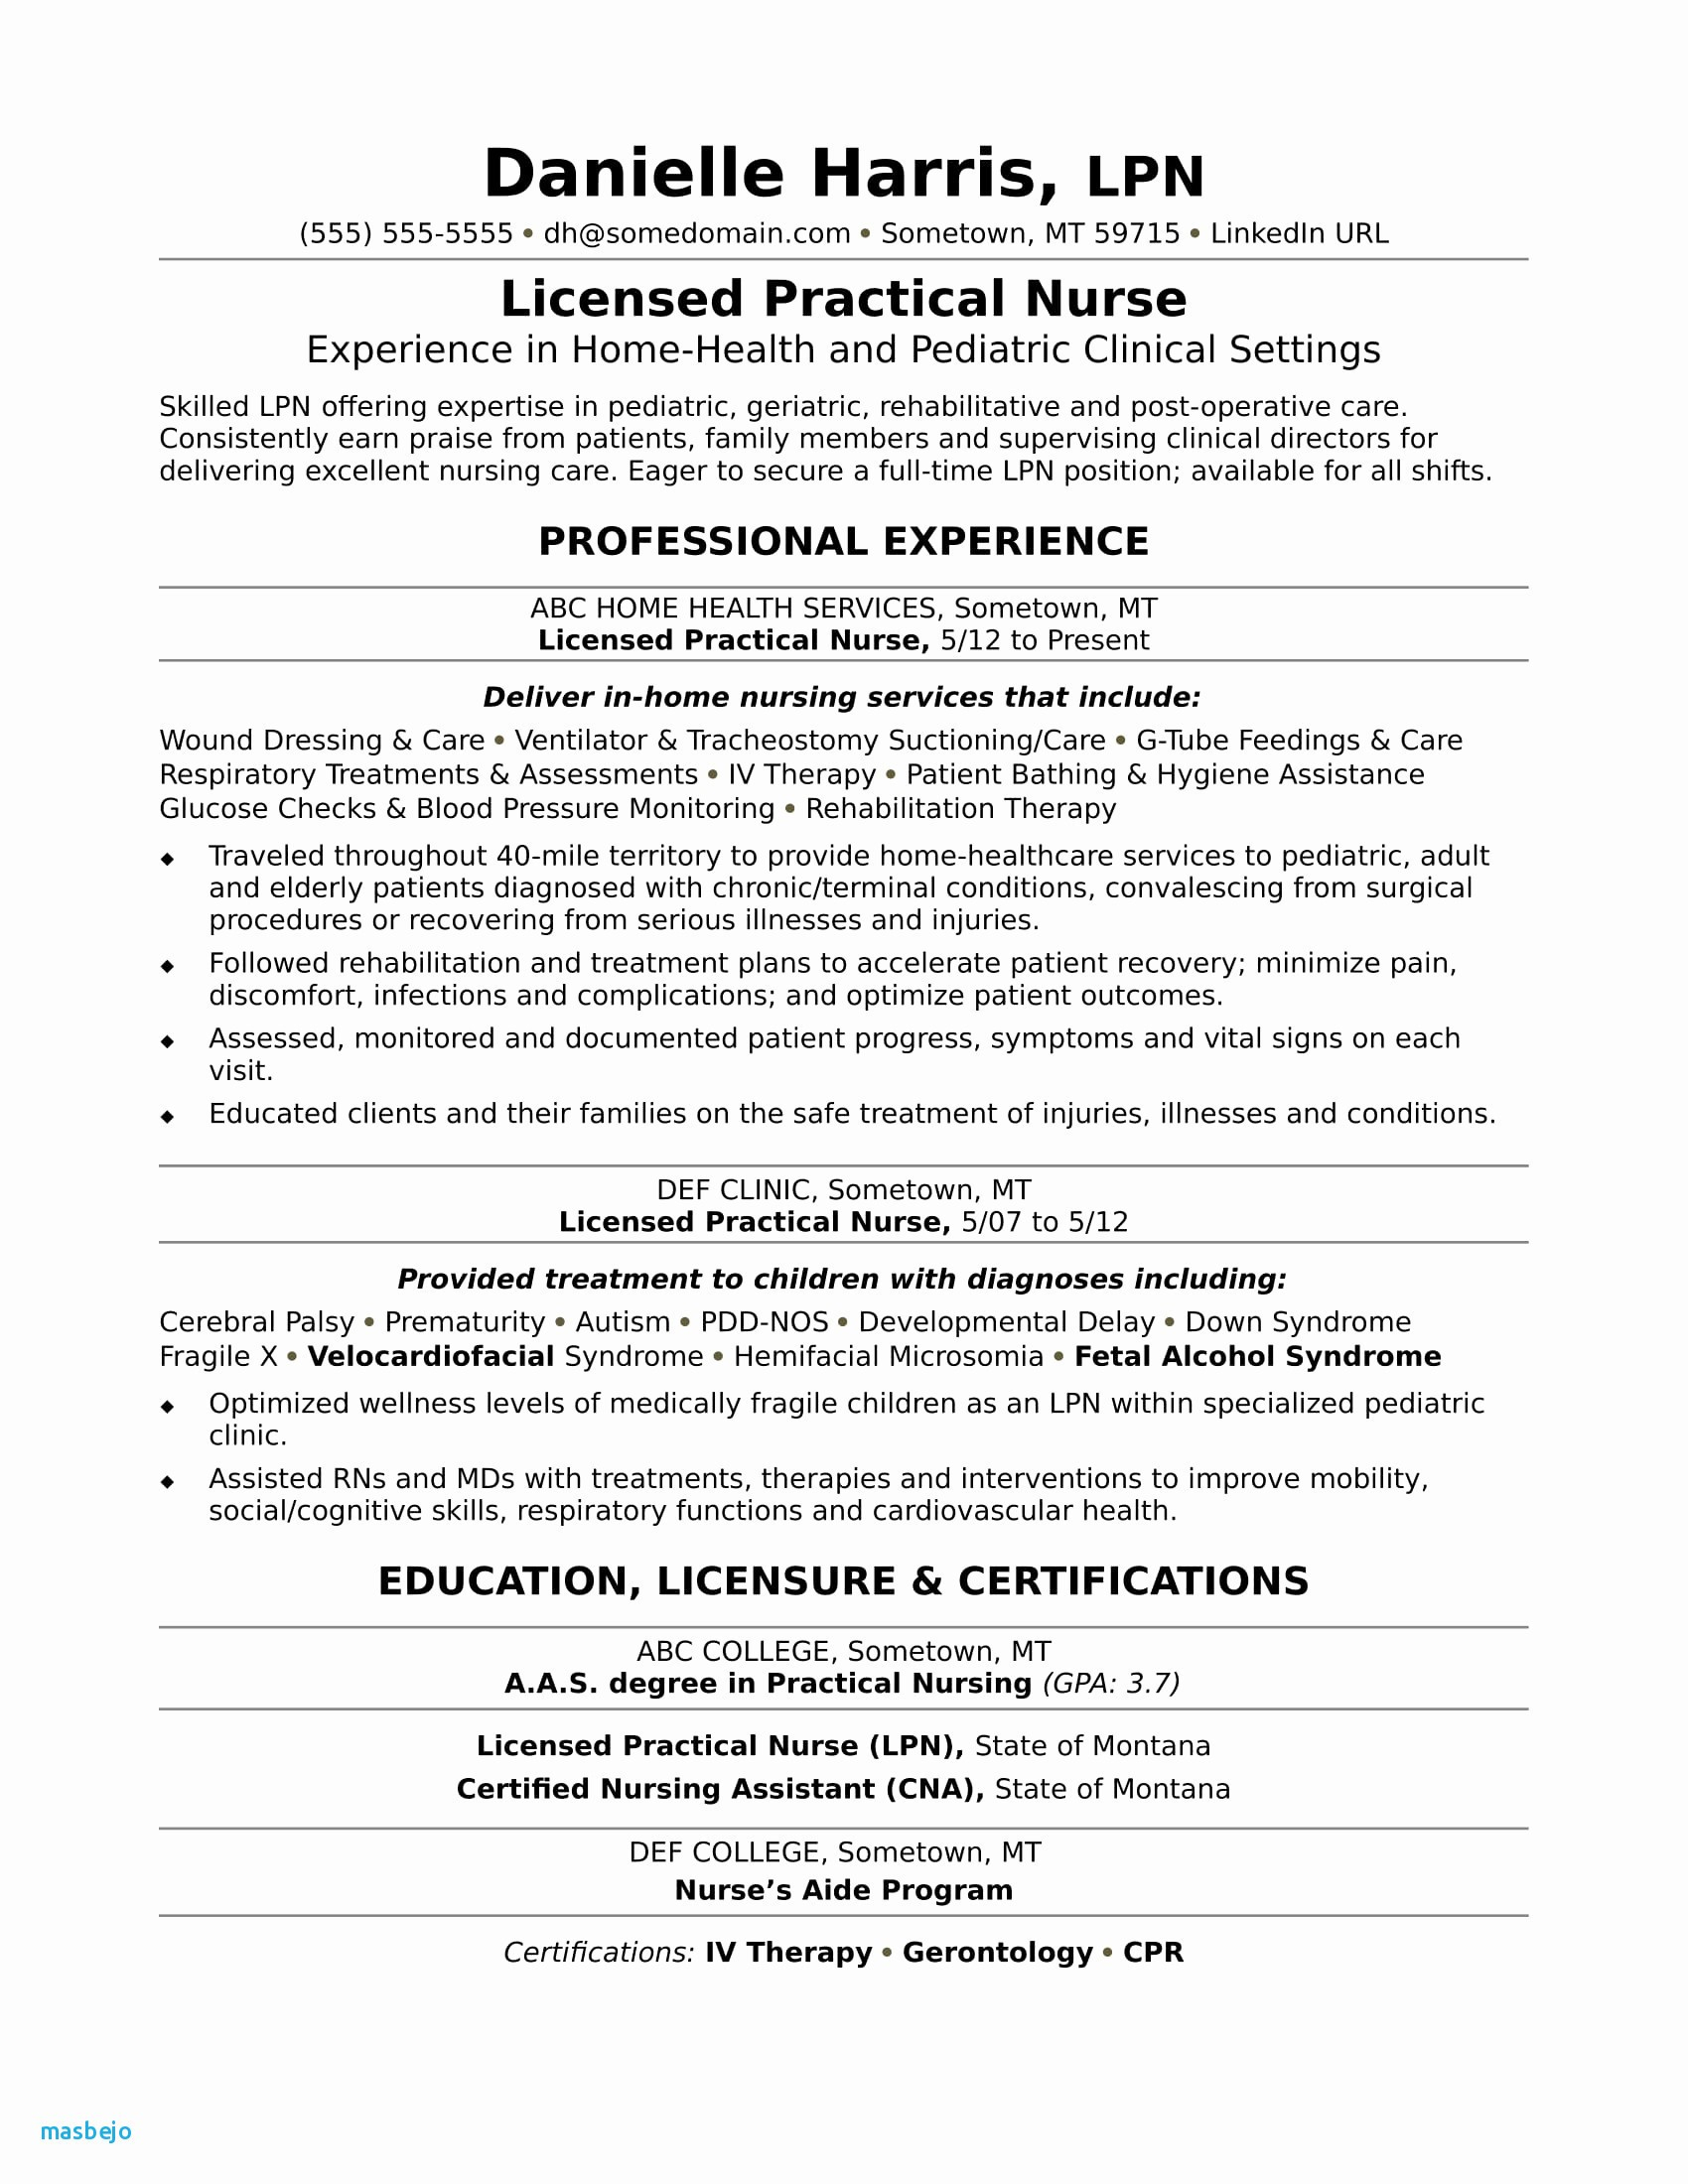 Home Care Nursing Resume - Sample Resume for A New Registered Nurse Resume Resume Examples